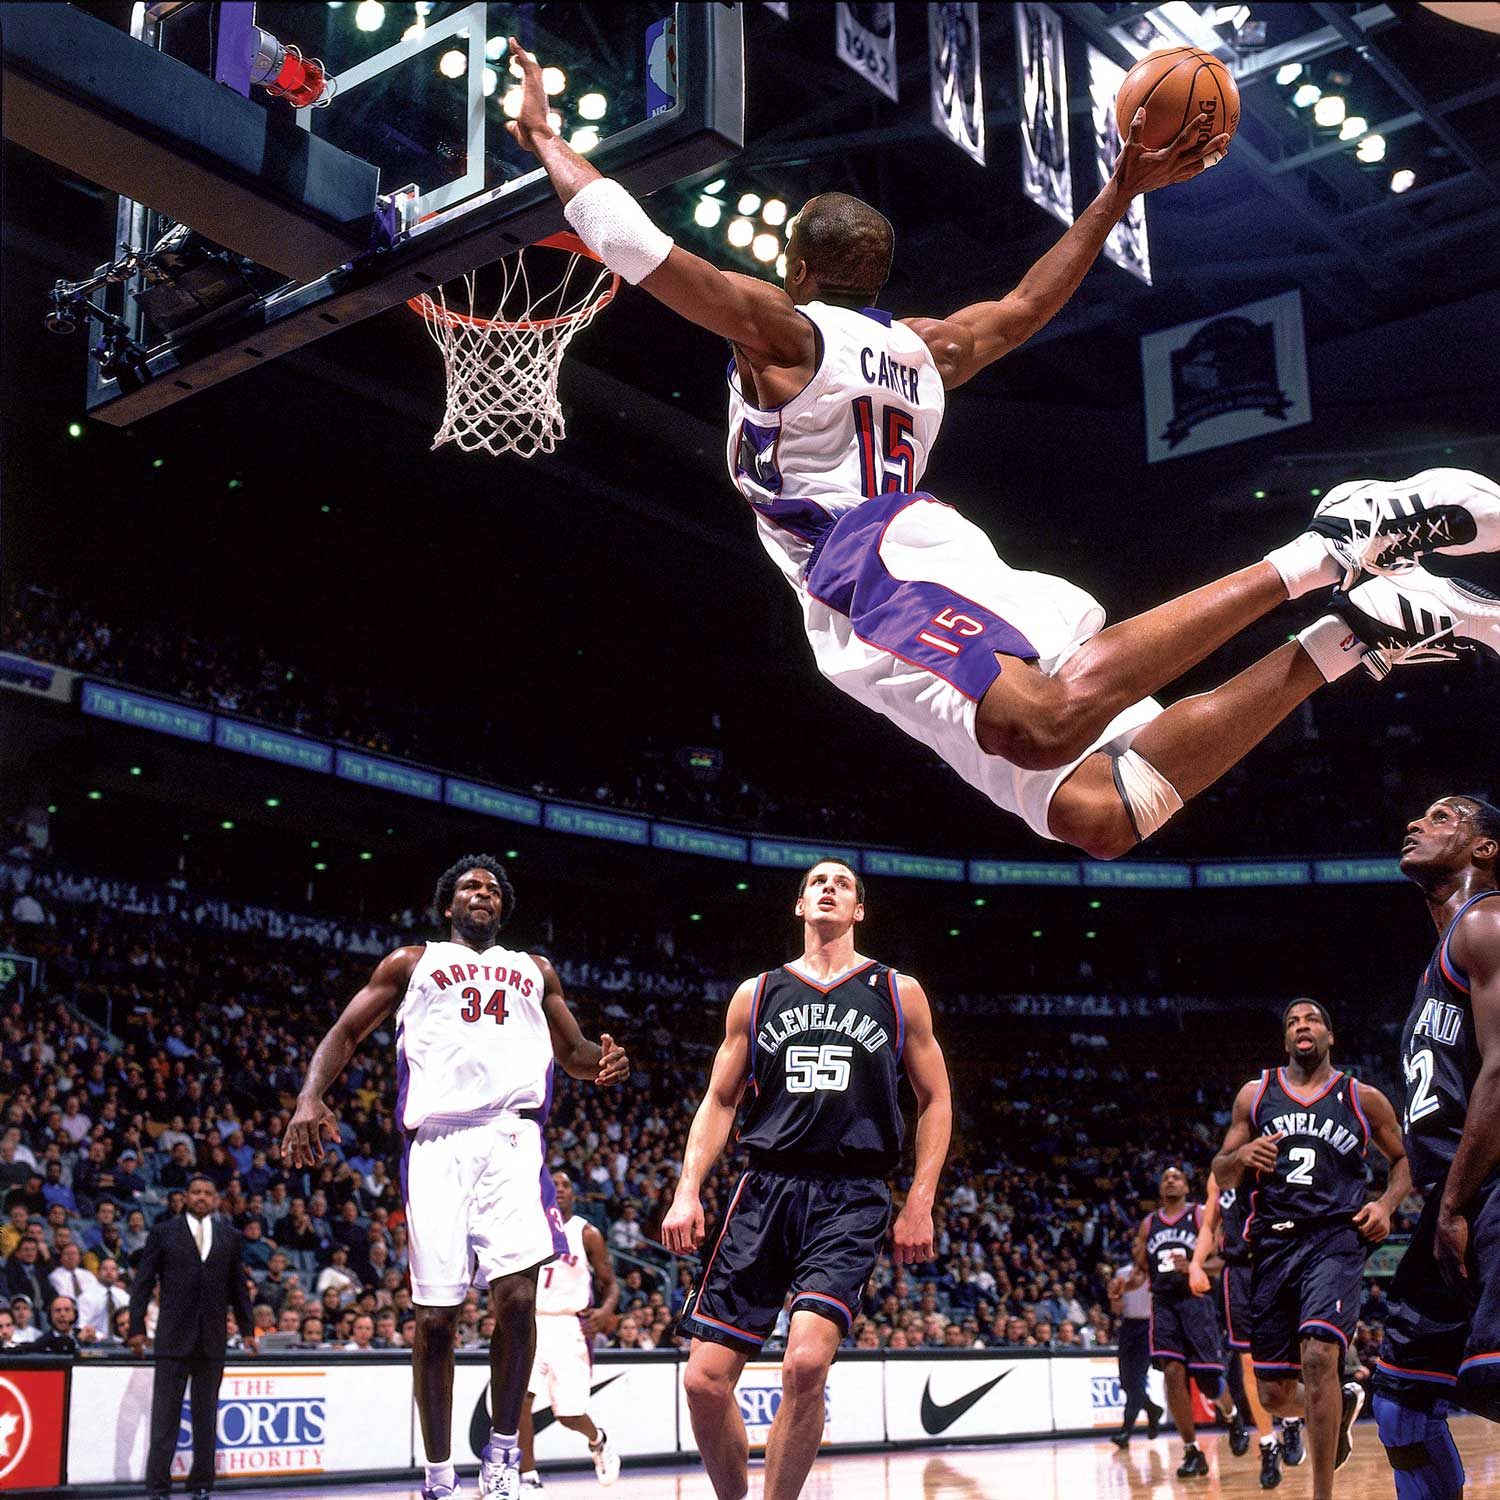 Vince Carter Would Say &#39-Sorry&#39- to Frederic Weis | SLAMonline